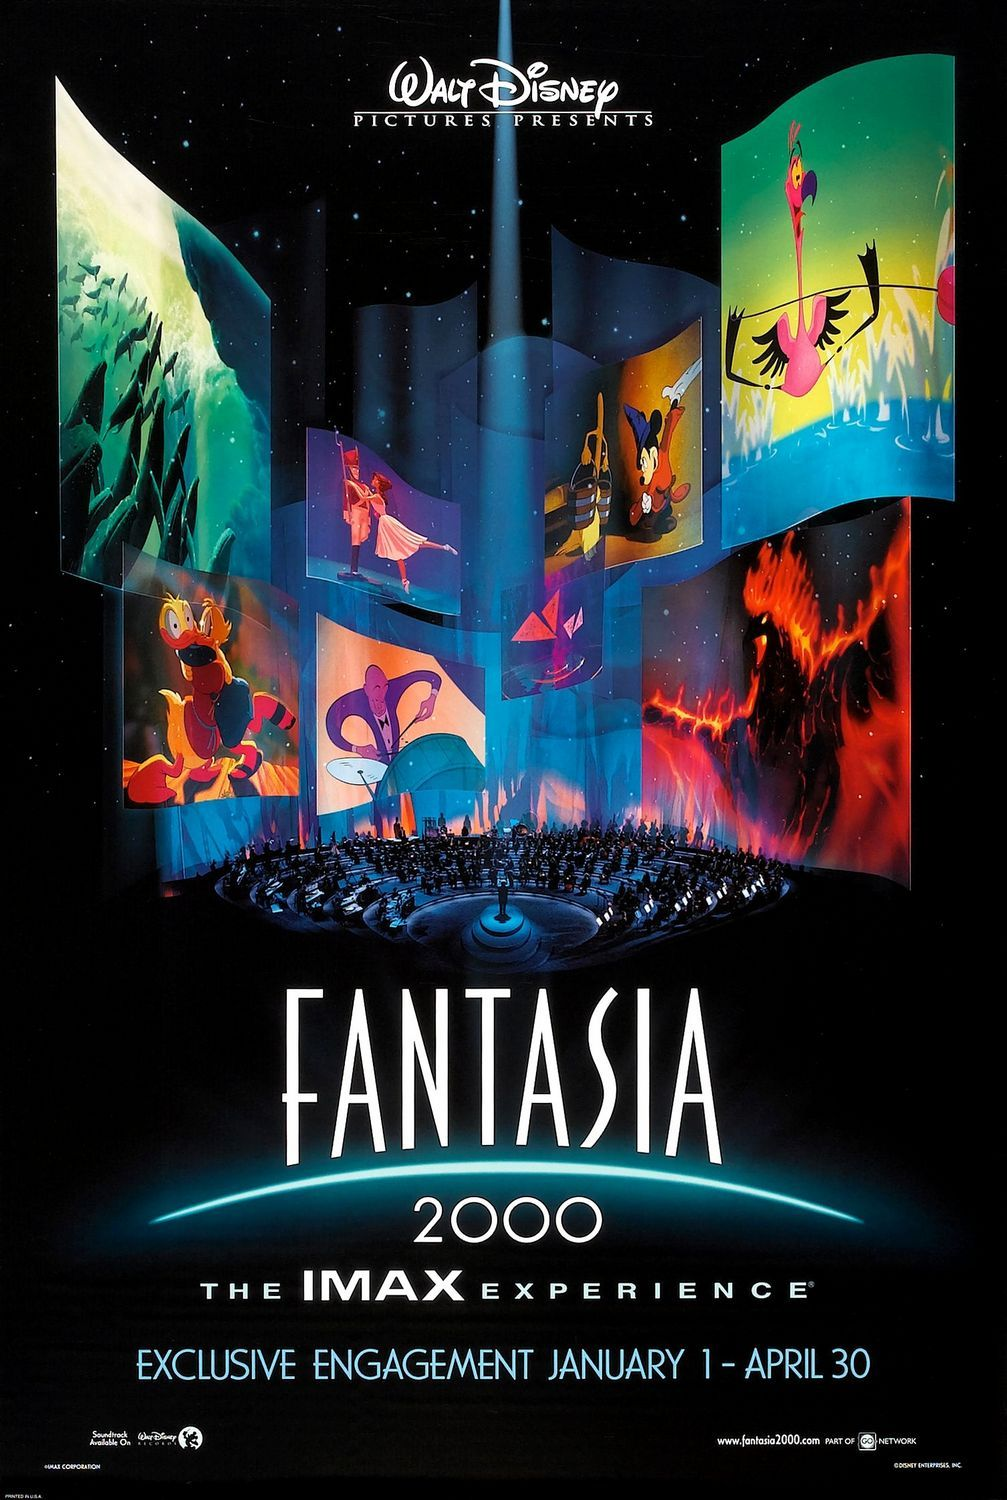 fantasia 2000 disney tv tropes